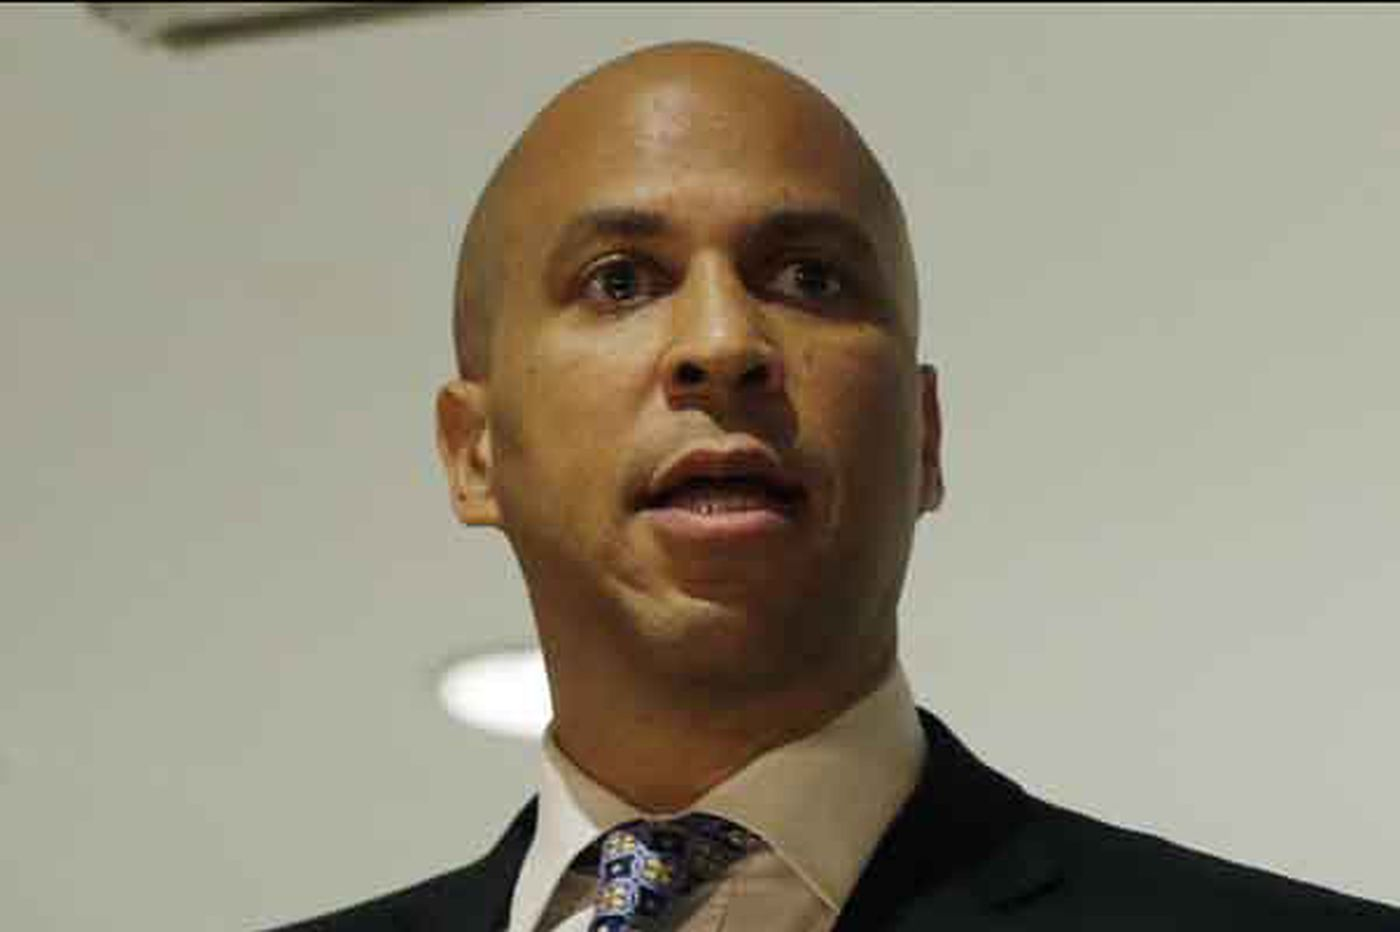 Democrat Holt's video contrasts him with Booker